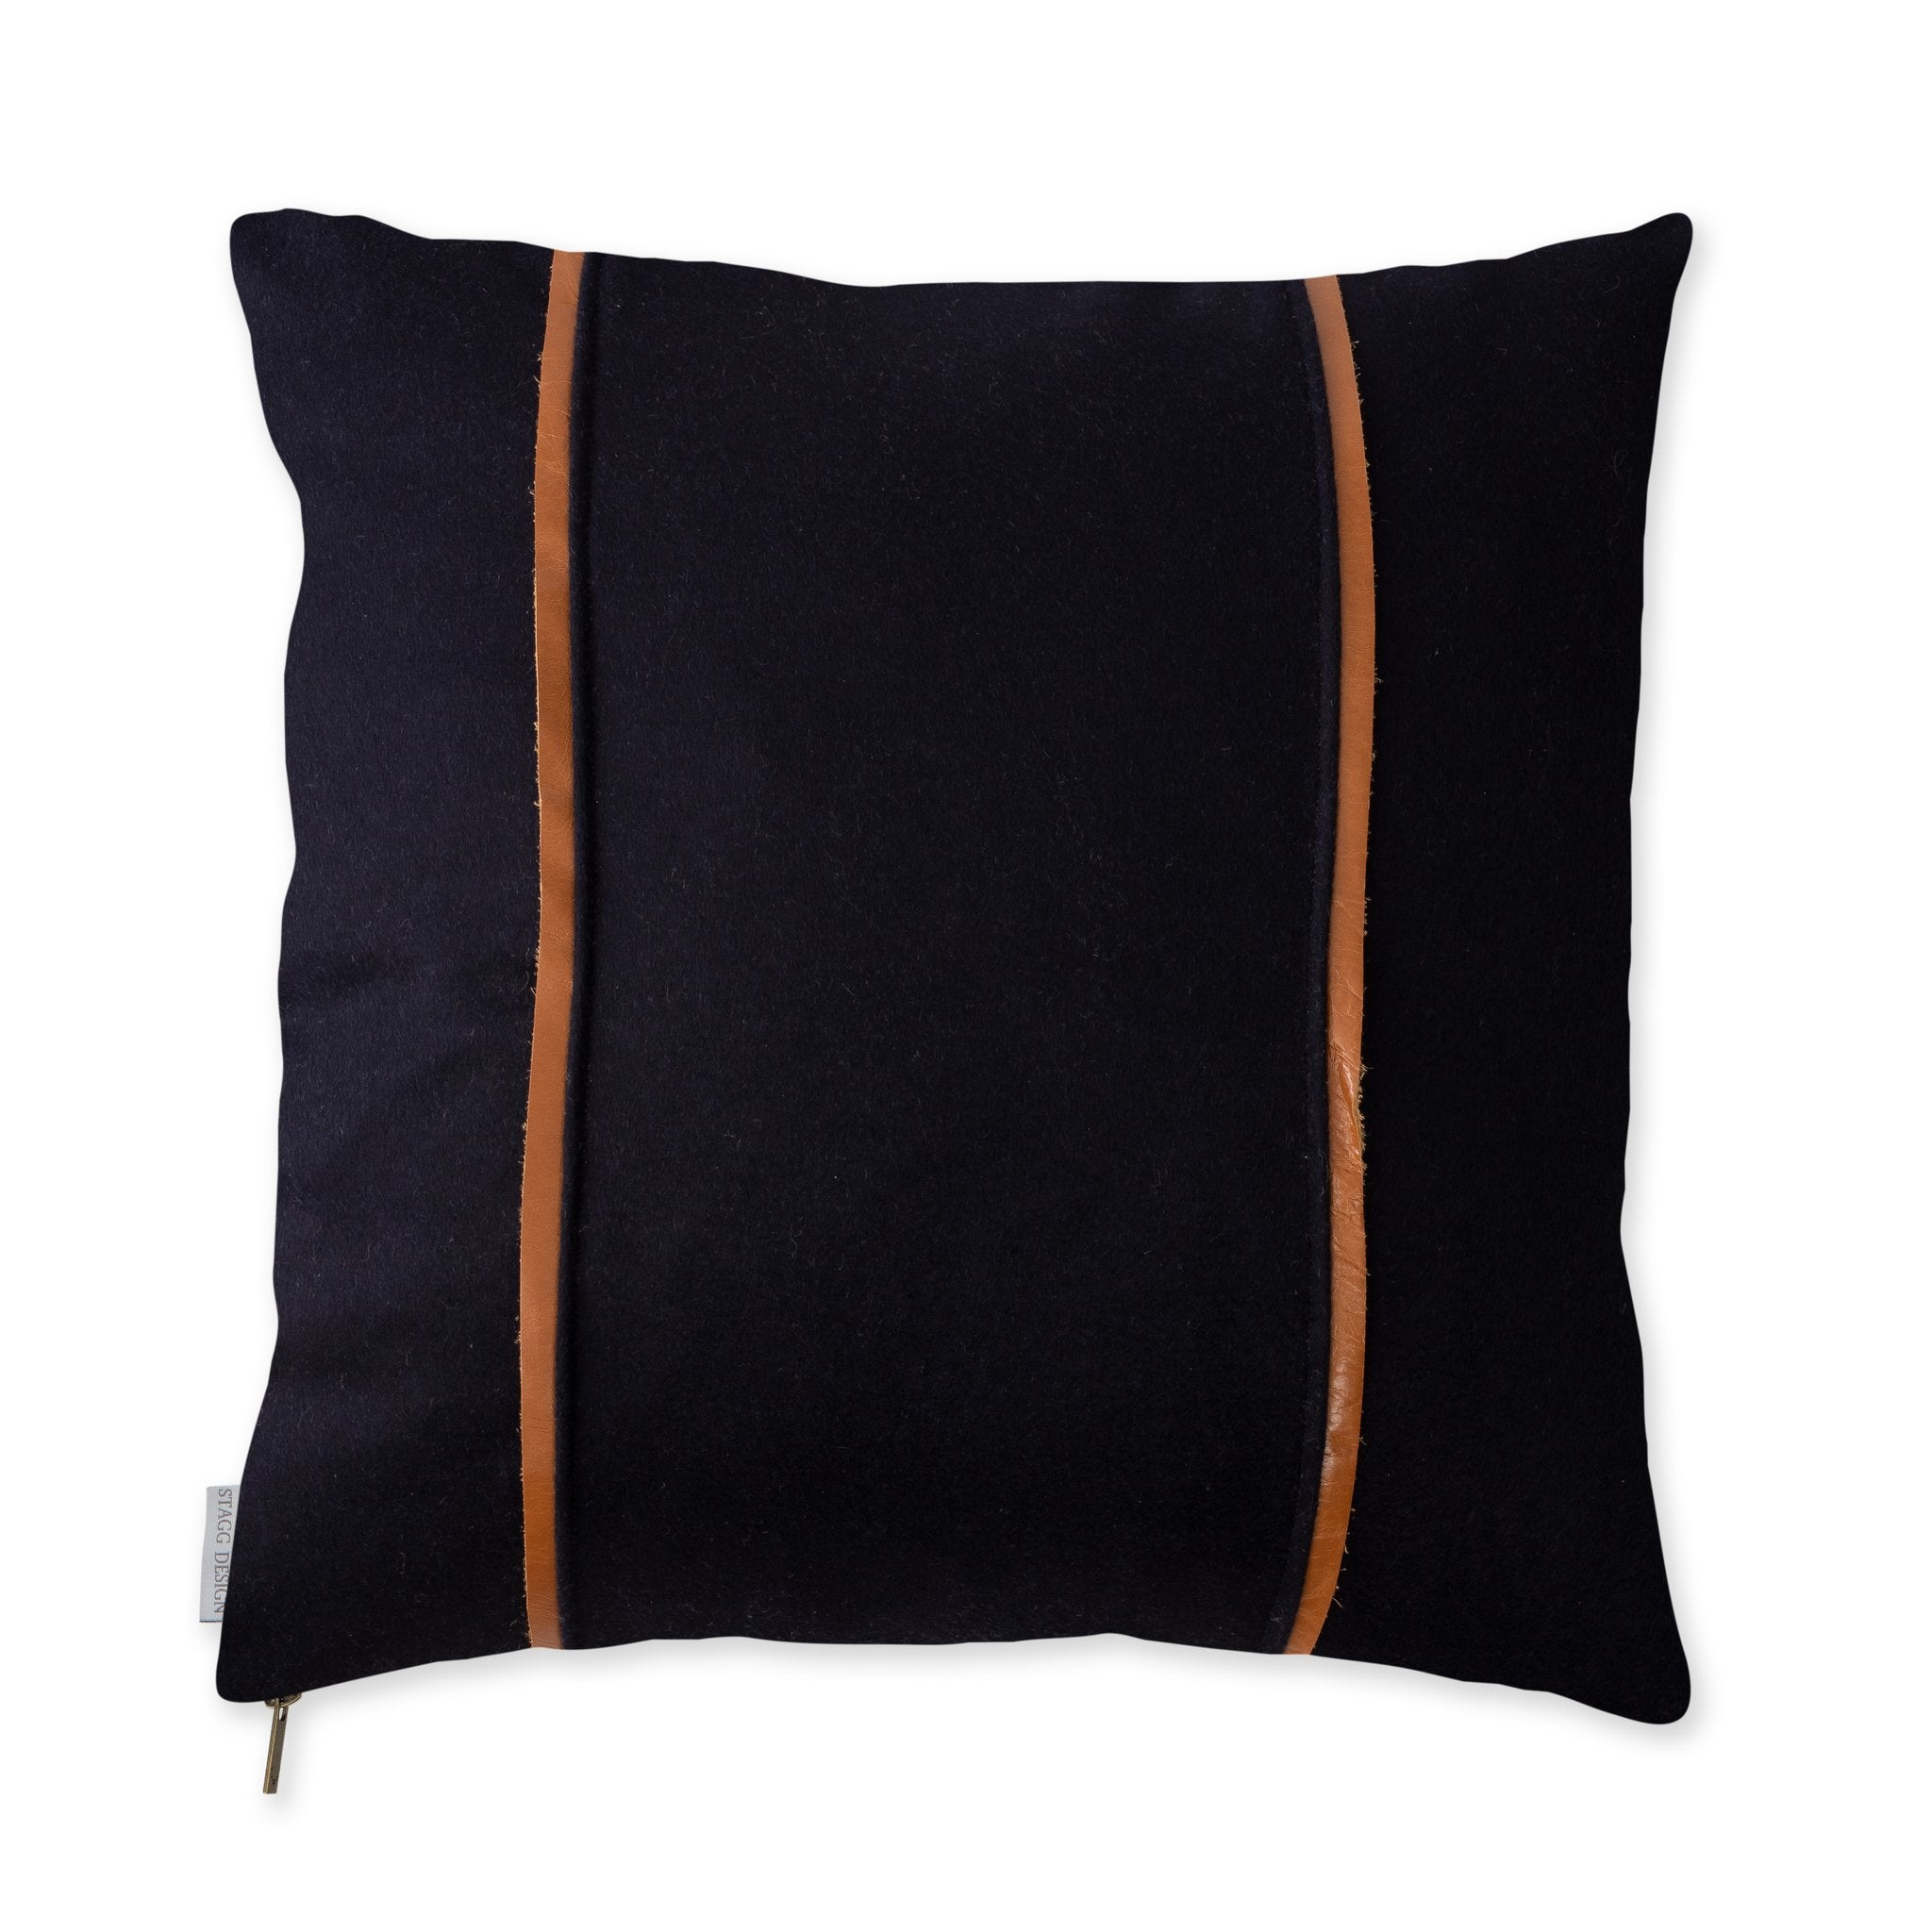 Indigo Accent Pillow Pairing (Set of 3)